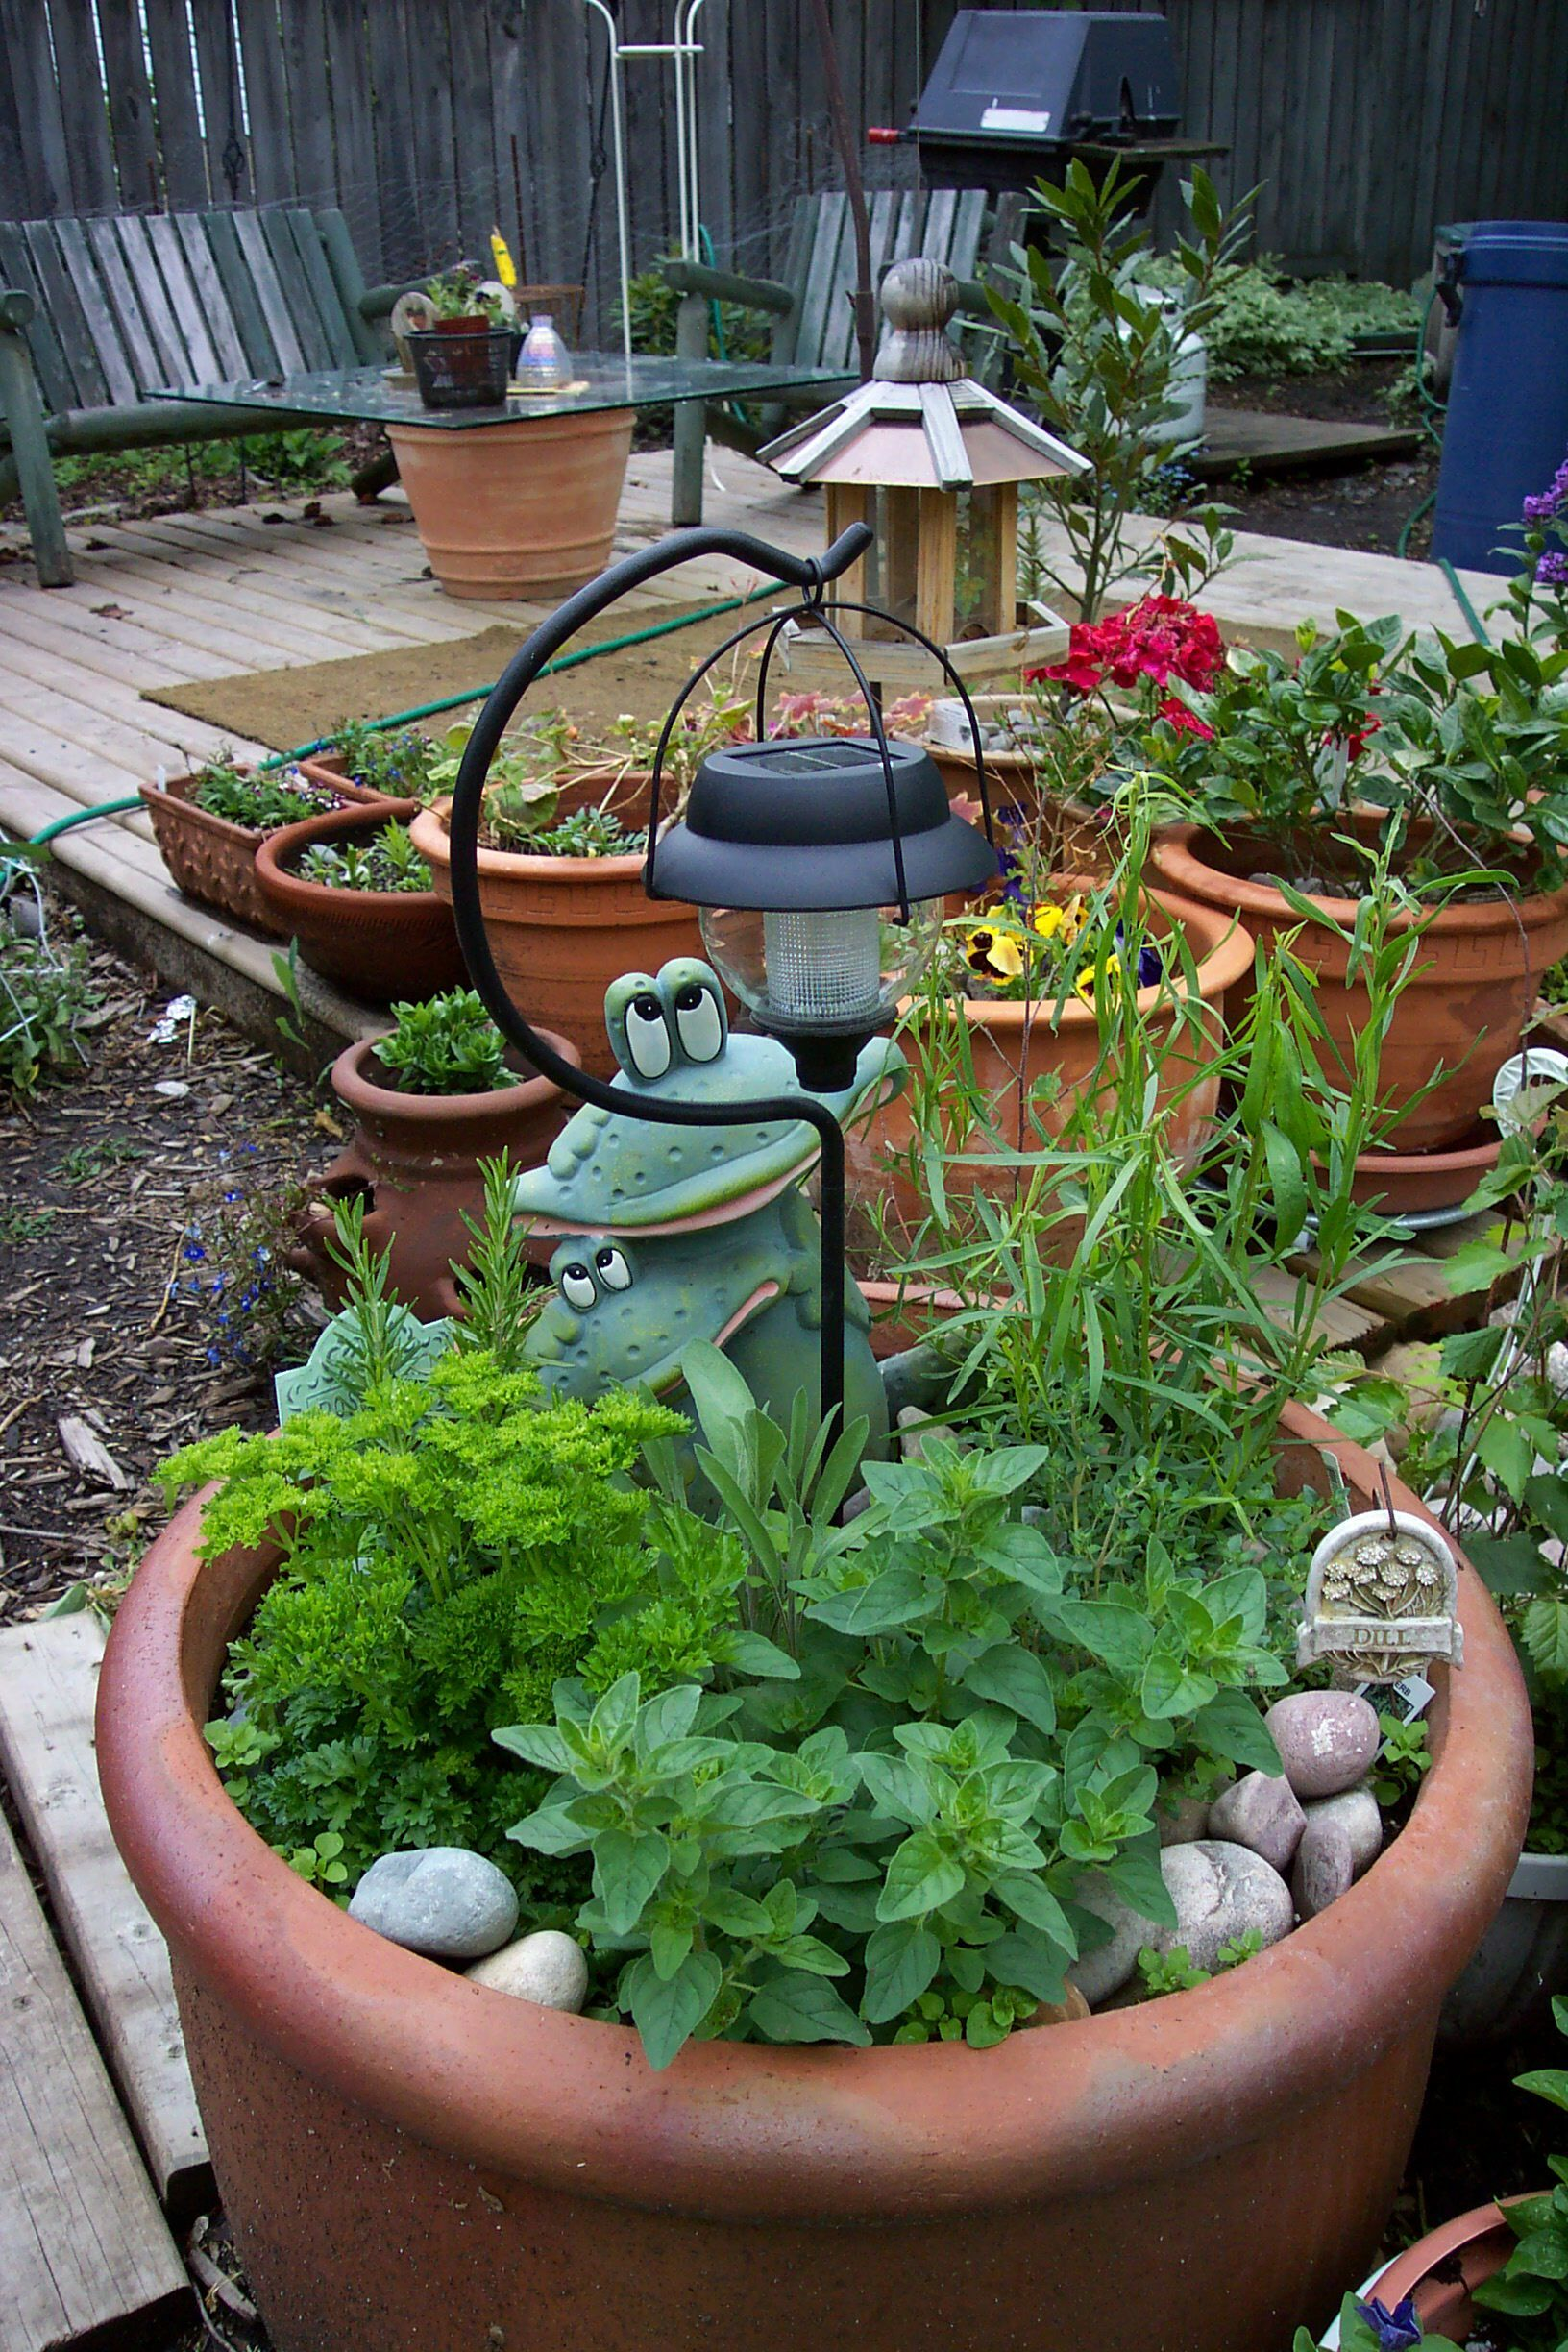 June 2005 - My herbs always seem to do better in this large urn.  I've layered the pot with stones to discourage weeds and to maintain moisture in the soil.